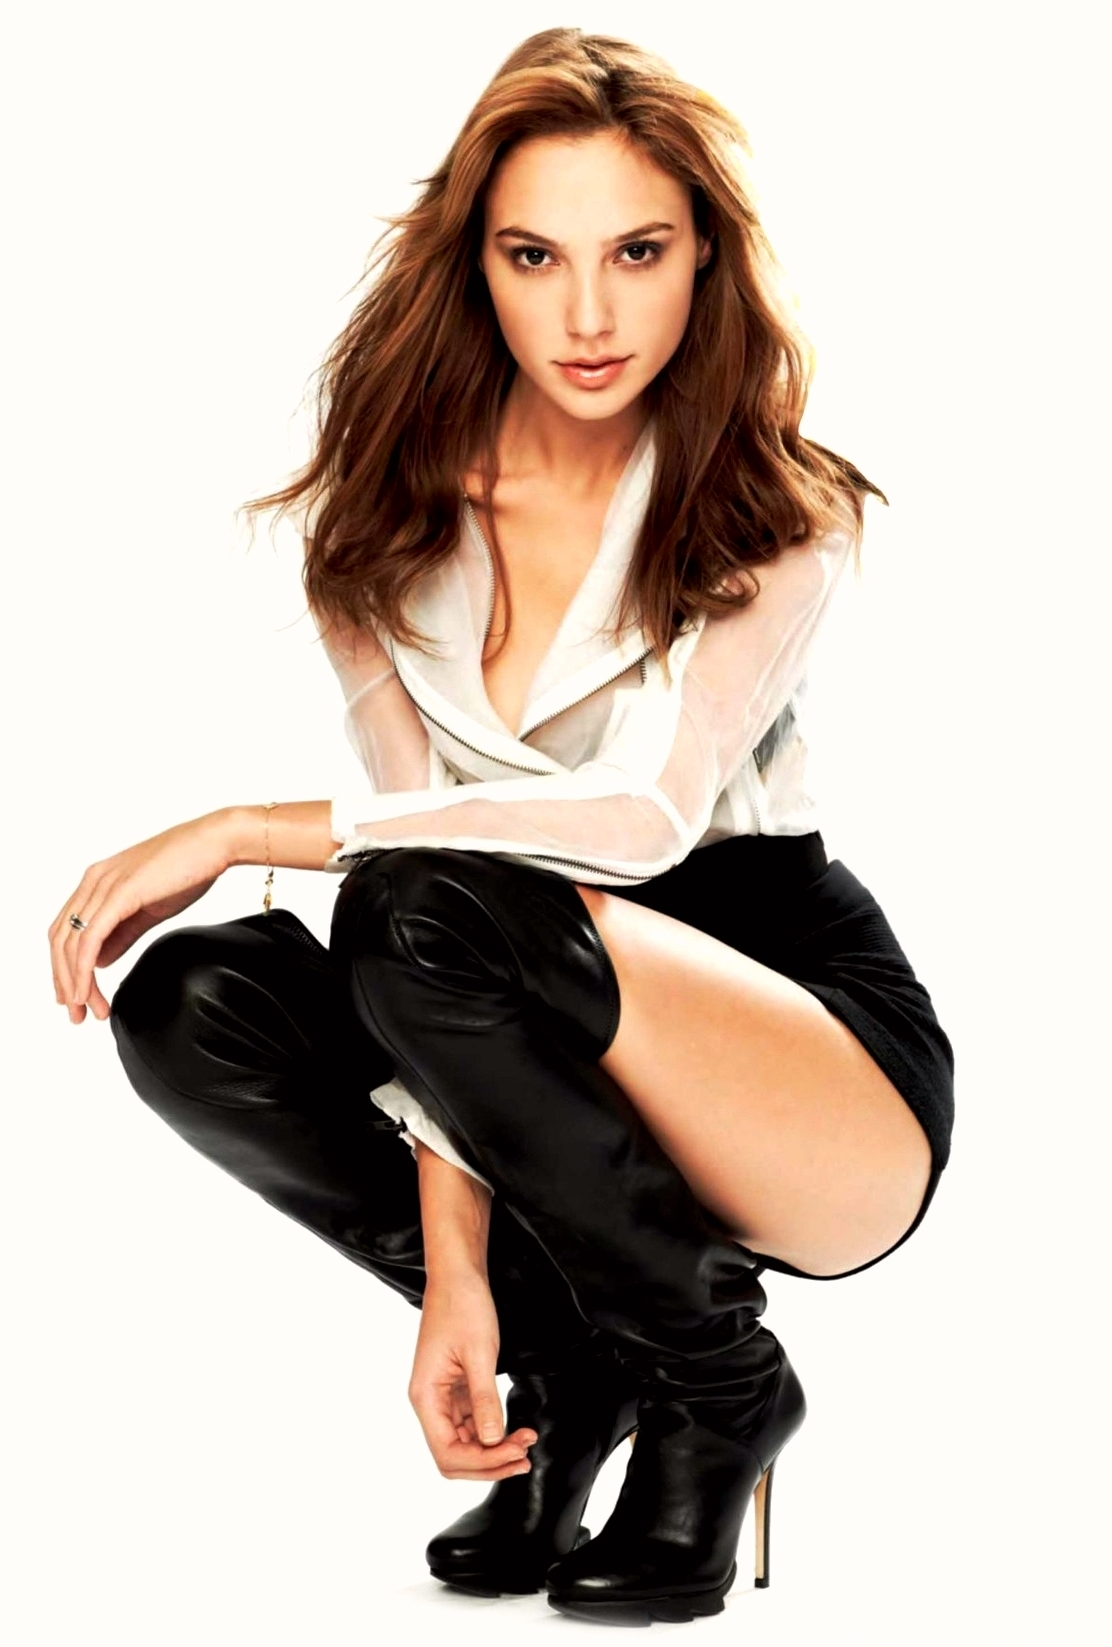 Pics Of Miss Universe >> Gal Gadot In Leather Boots And White Shirt | The Lowdown